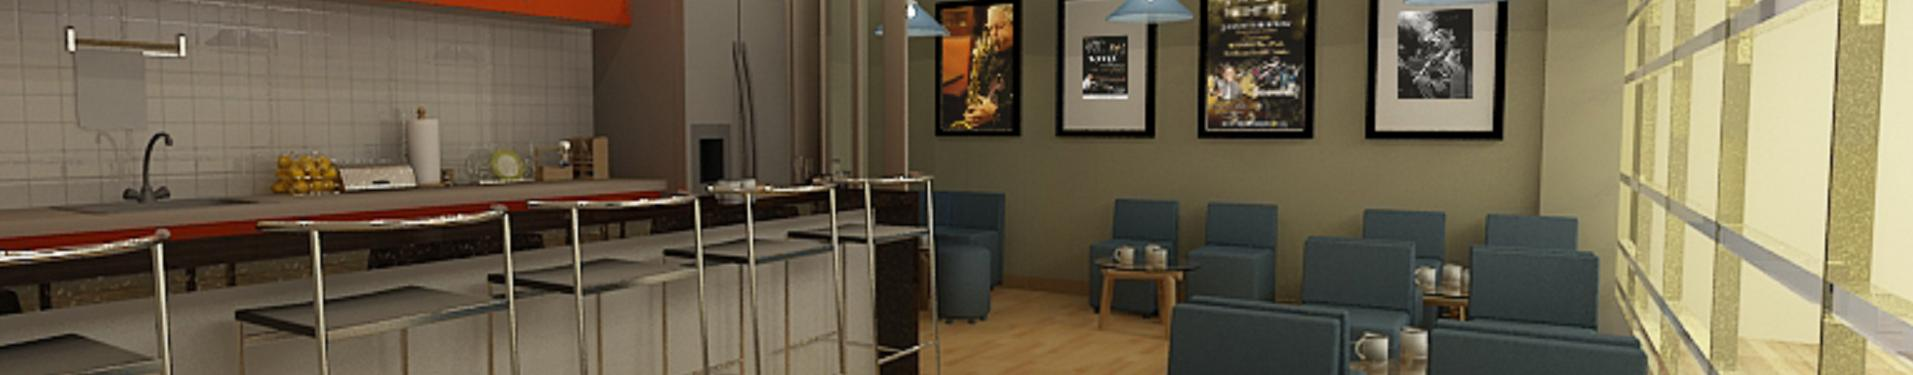 Office interior design singapore modern interiors for for Office interior decoration services